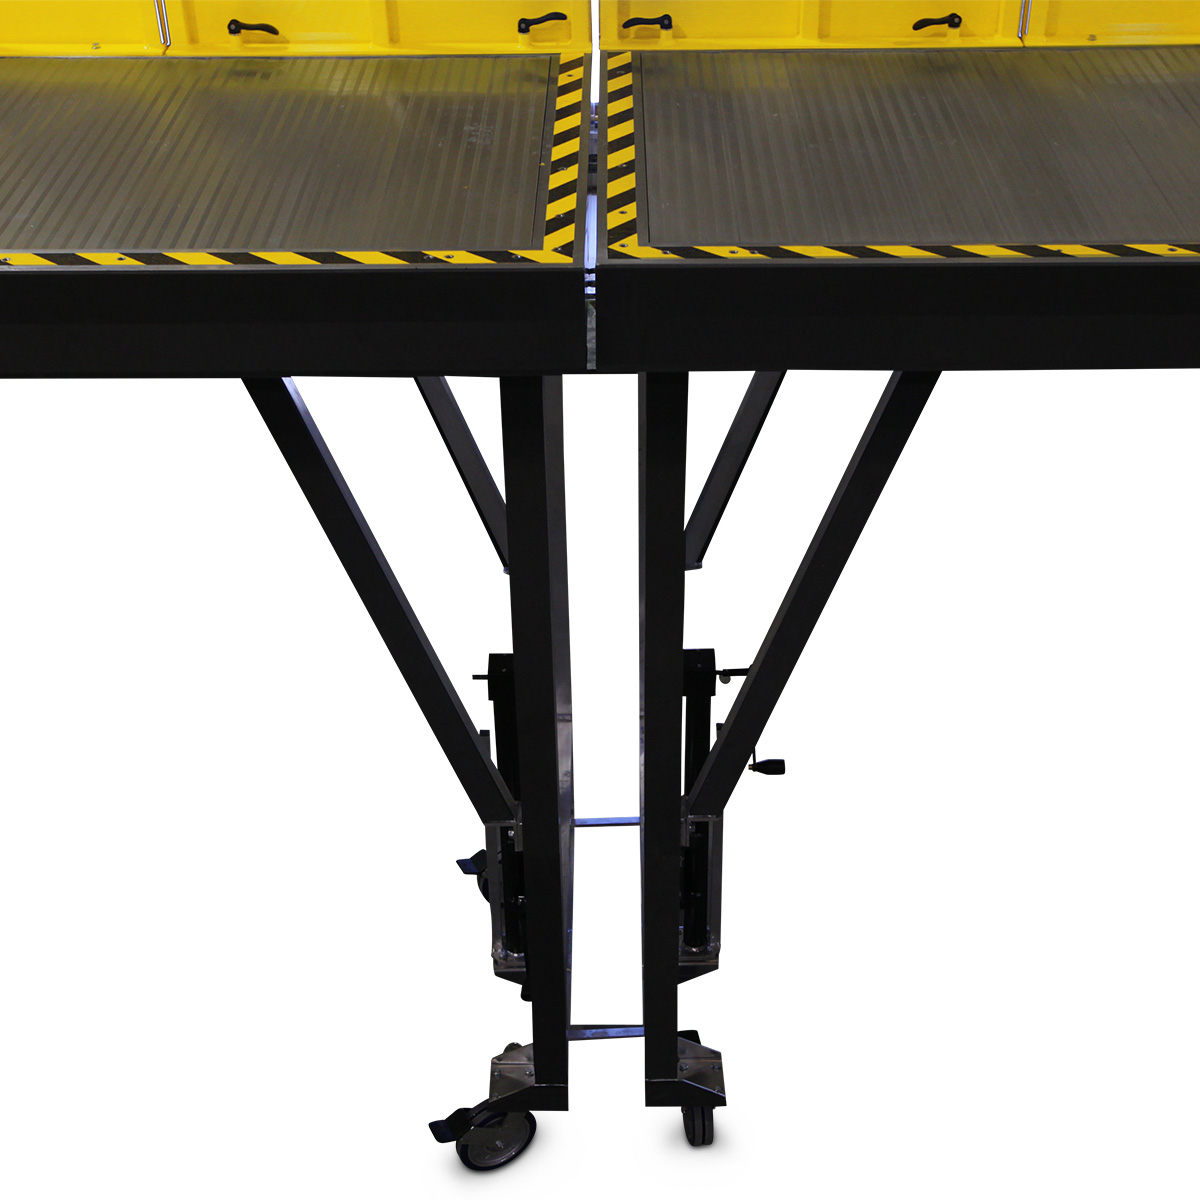 AgustaWestland AW139 – Daily Maintenance OSHA compliant, adjustable height mobile work stand with protective foam on all leading edges and link bars for leveling work surfaces while on uneven shop floors.